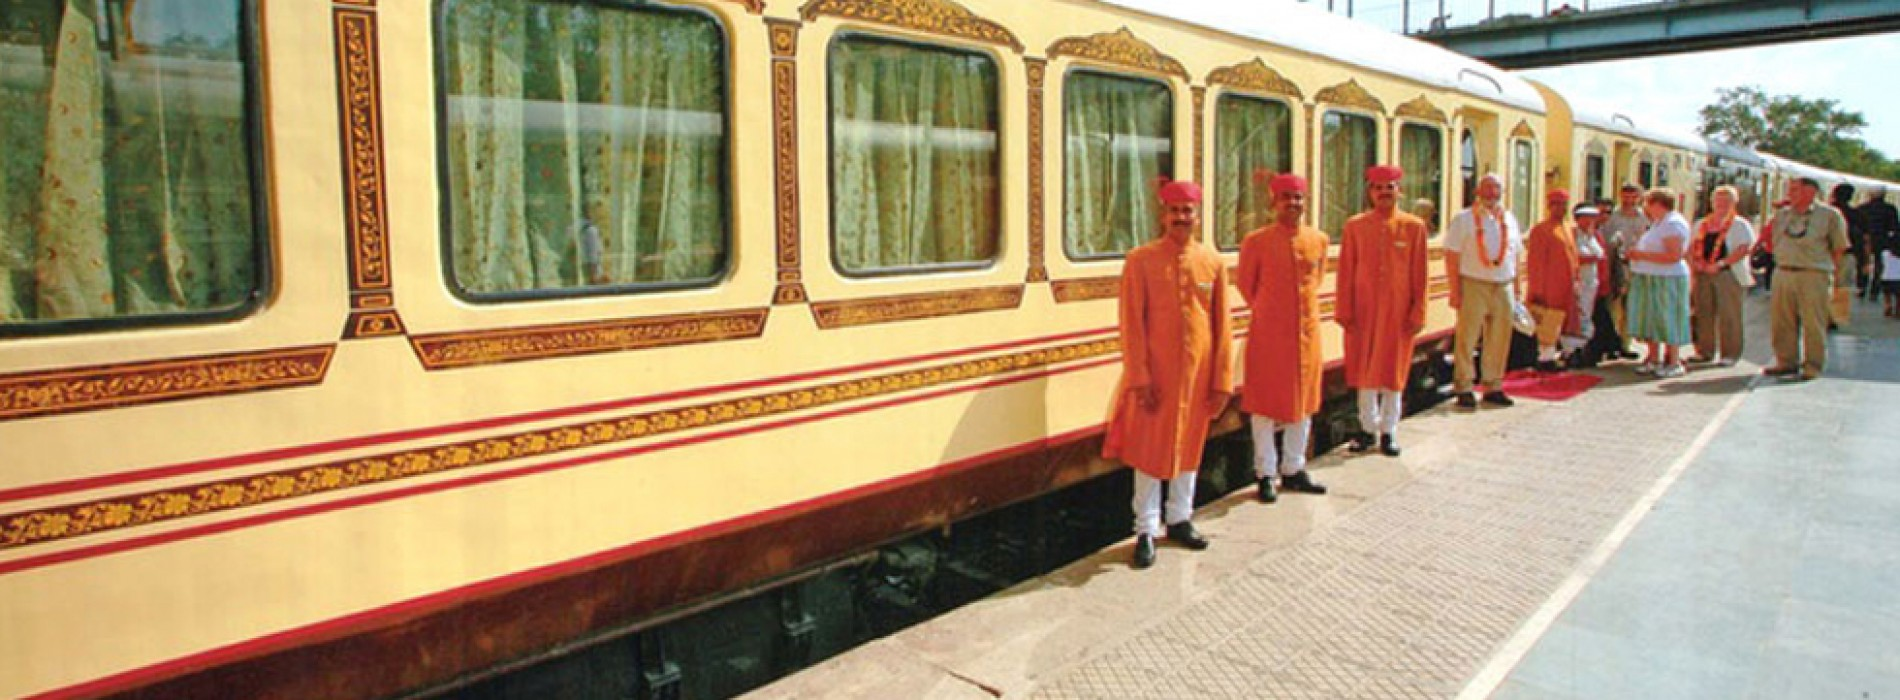 Not so royal revenue from royal trains in Rajasthan